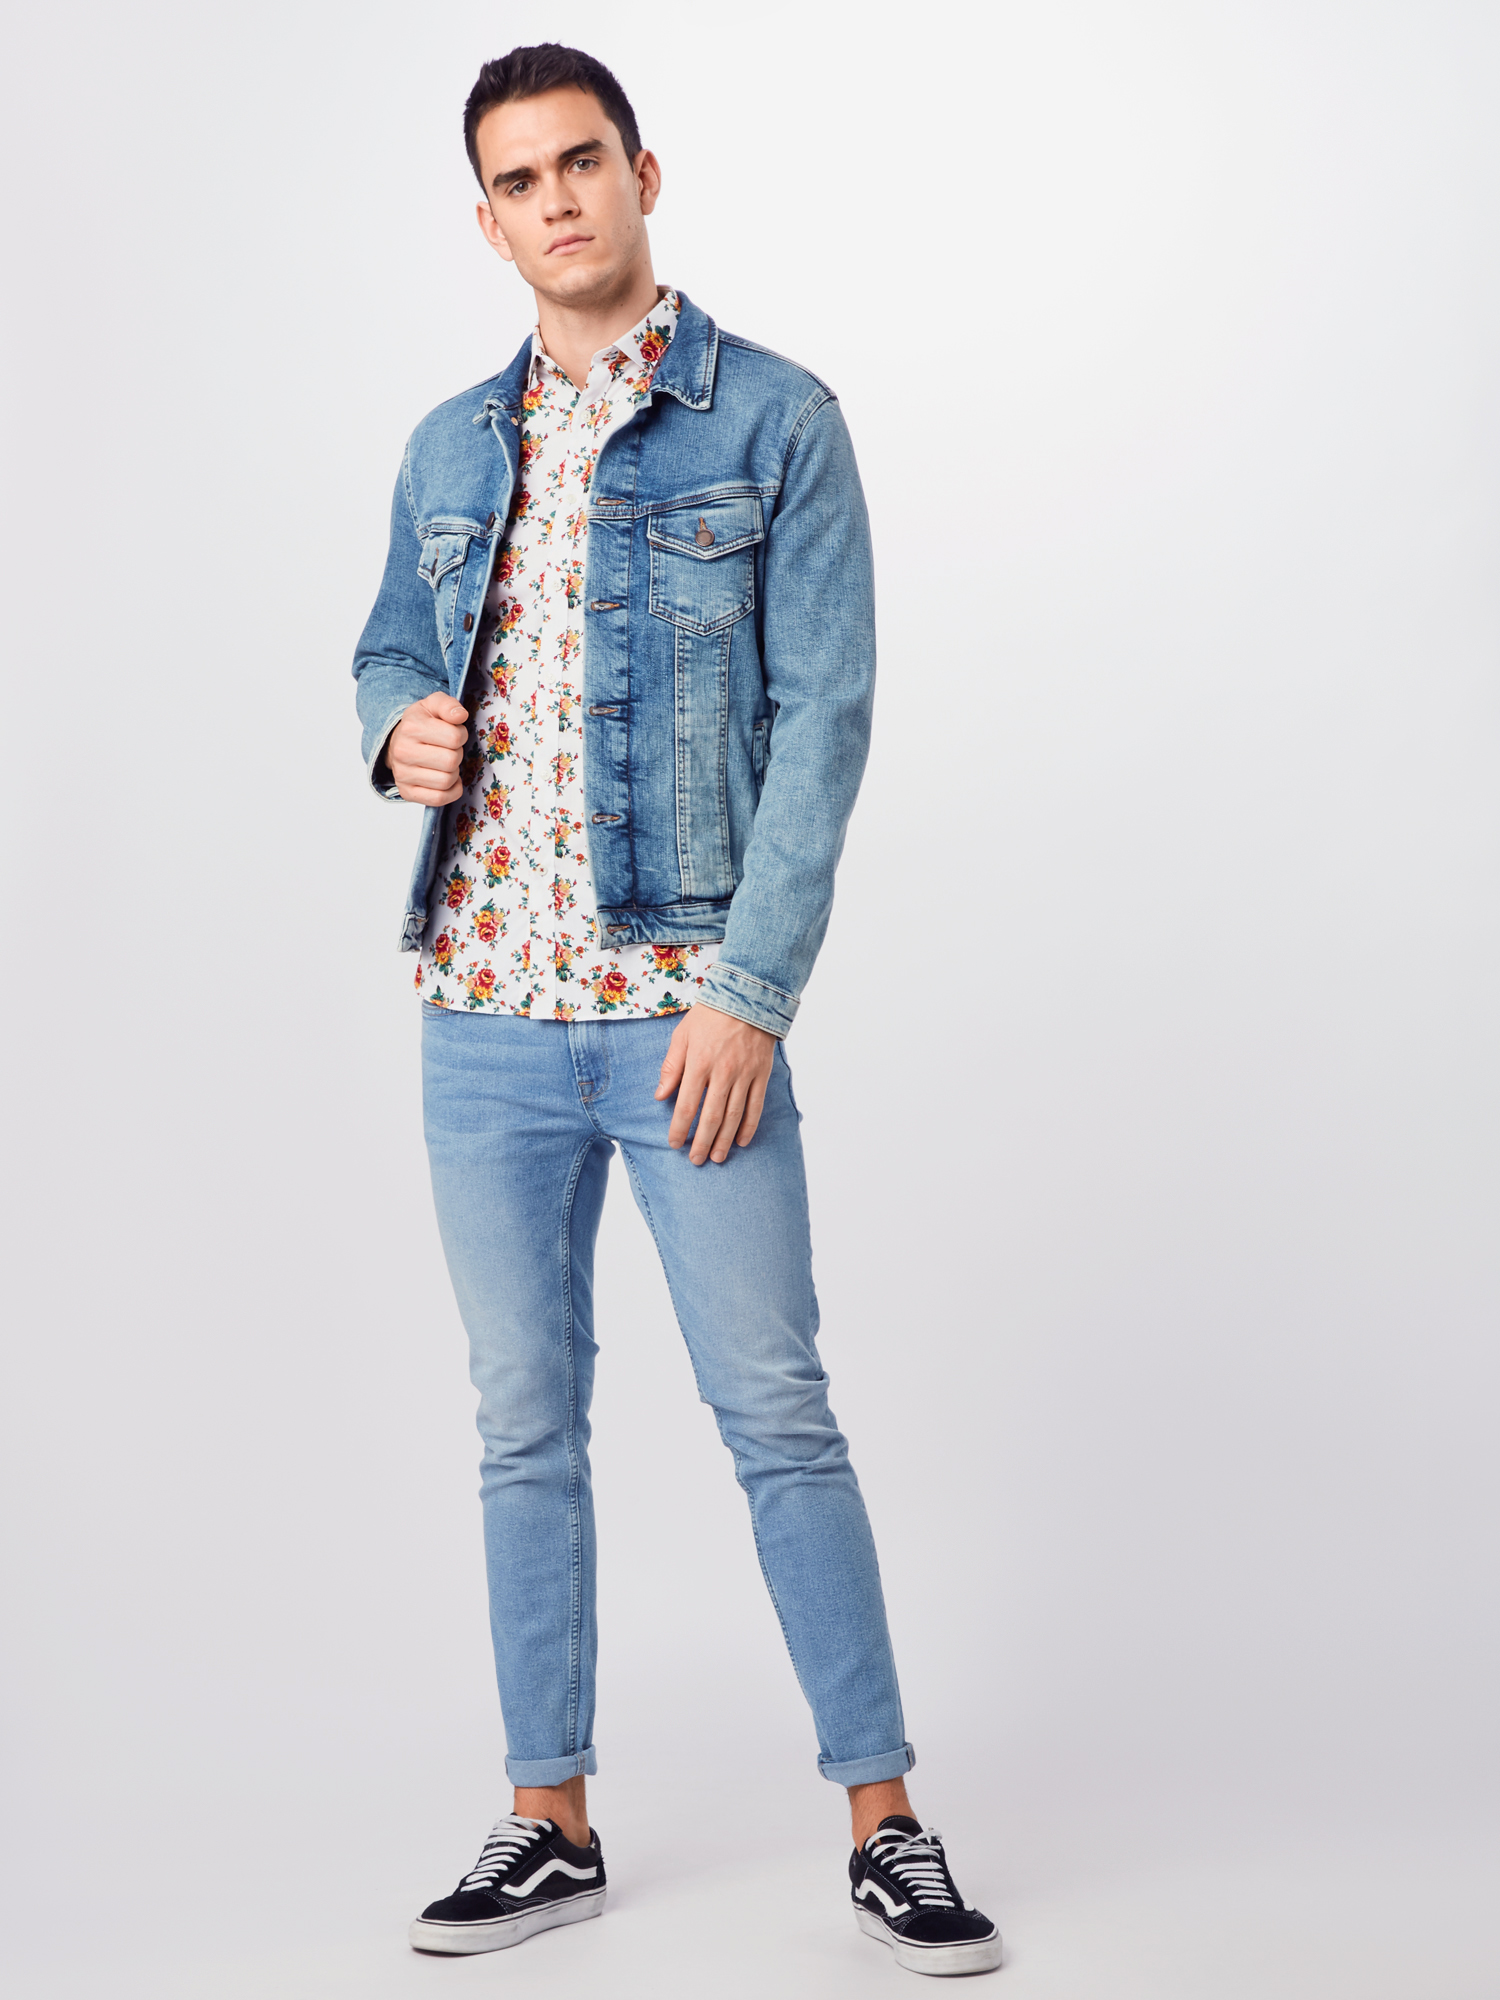 JACK & JONES Overhemd in Rood / Wit 8qxudSap